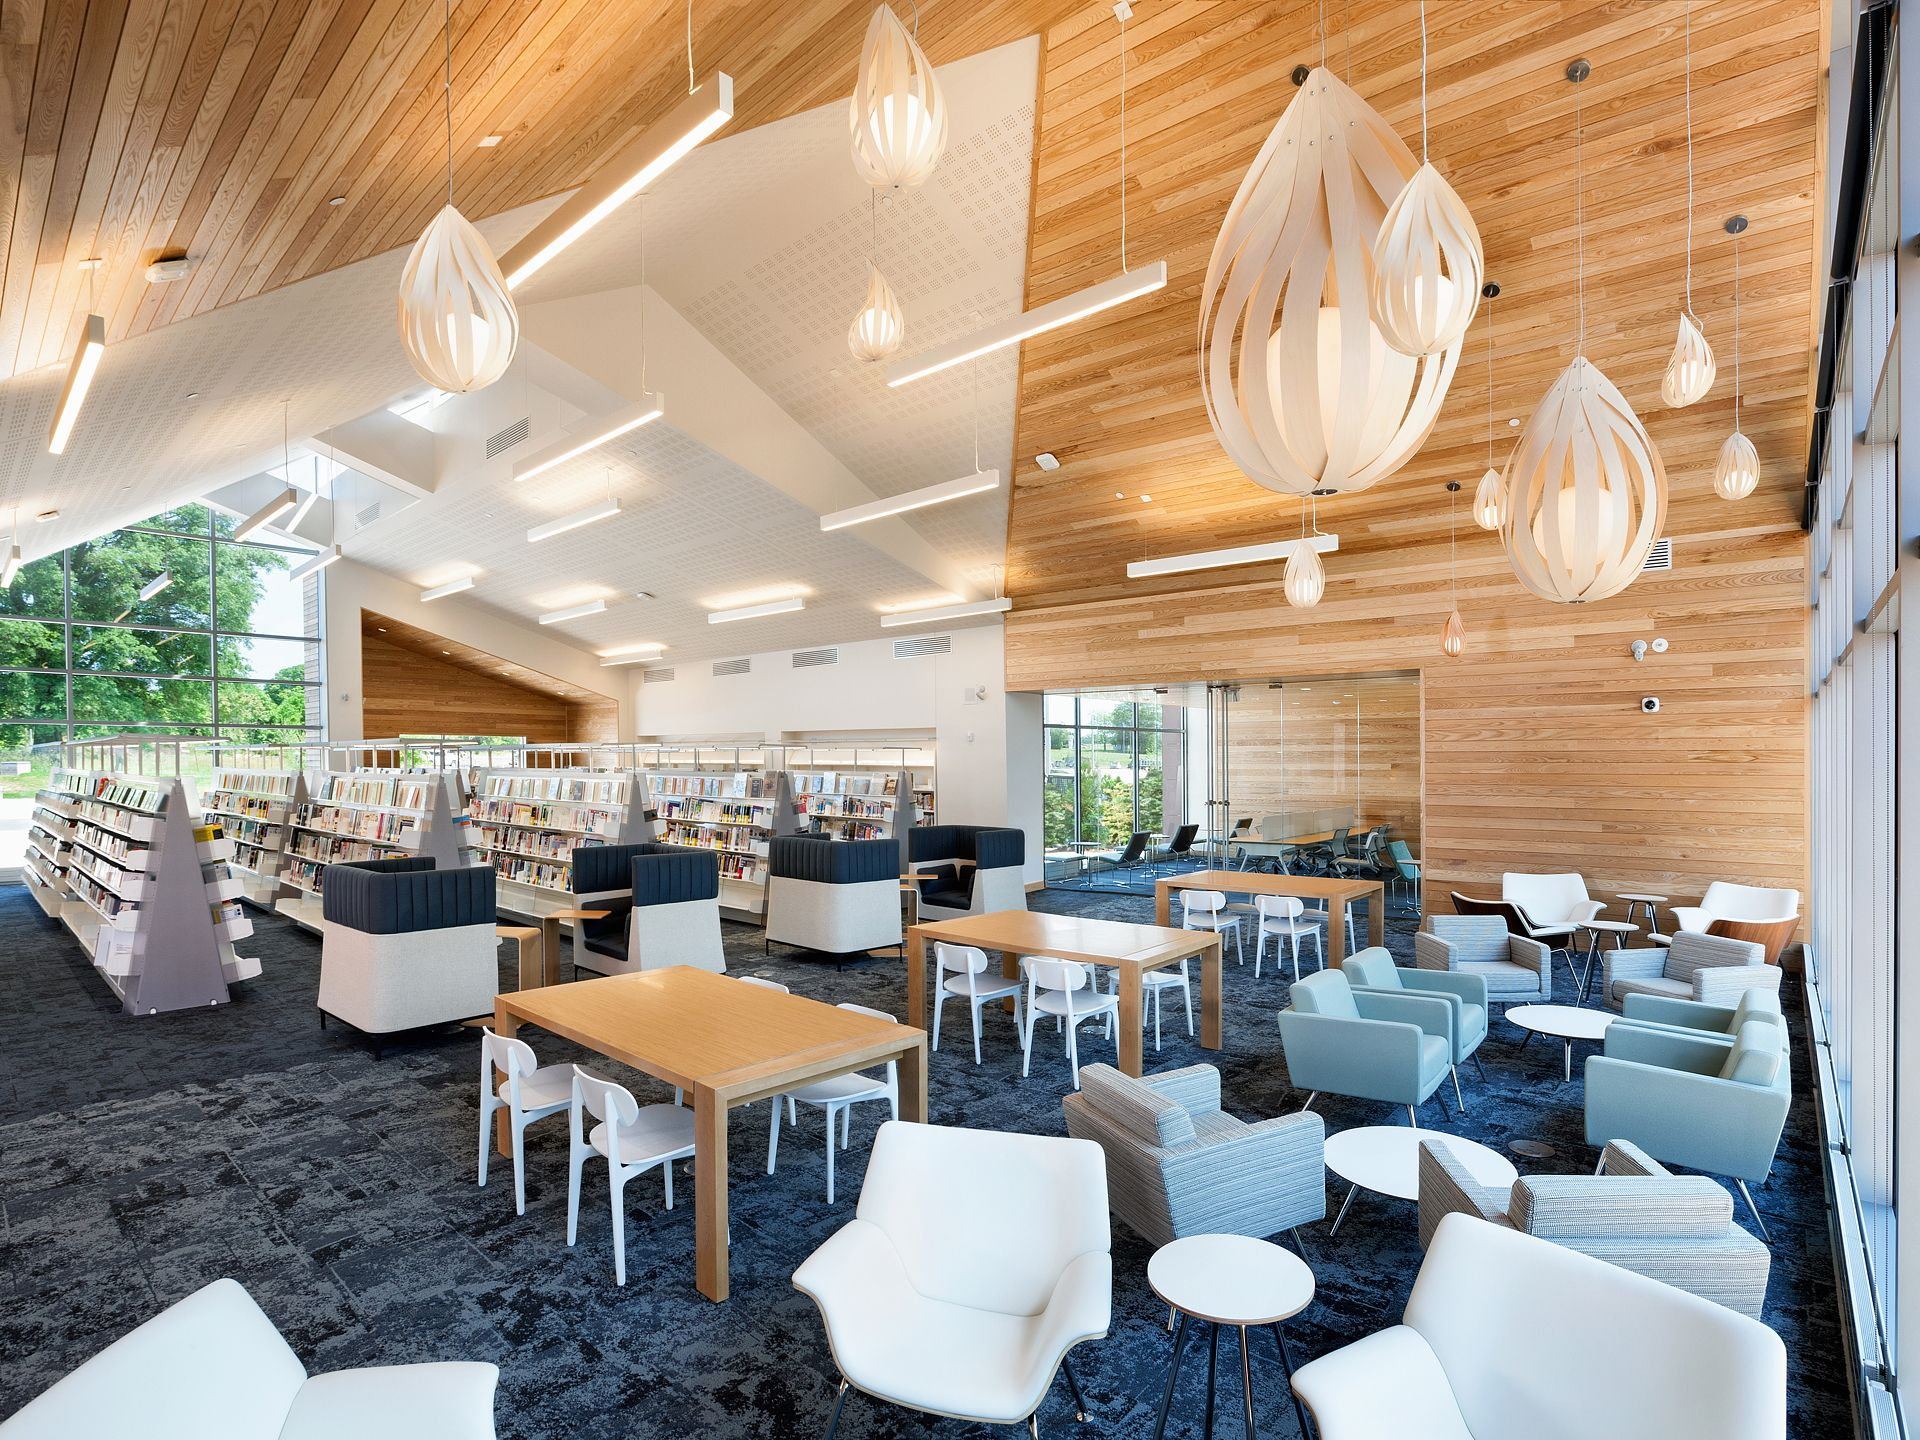 The American Institute of Architects (AIA) and the American Library Association (ALA) have selected the eight winners of the 2017 AIA/ALA Library Building Award. Photography: © Chris Cunningham – courtesy of AIA